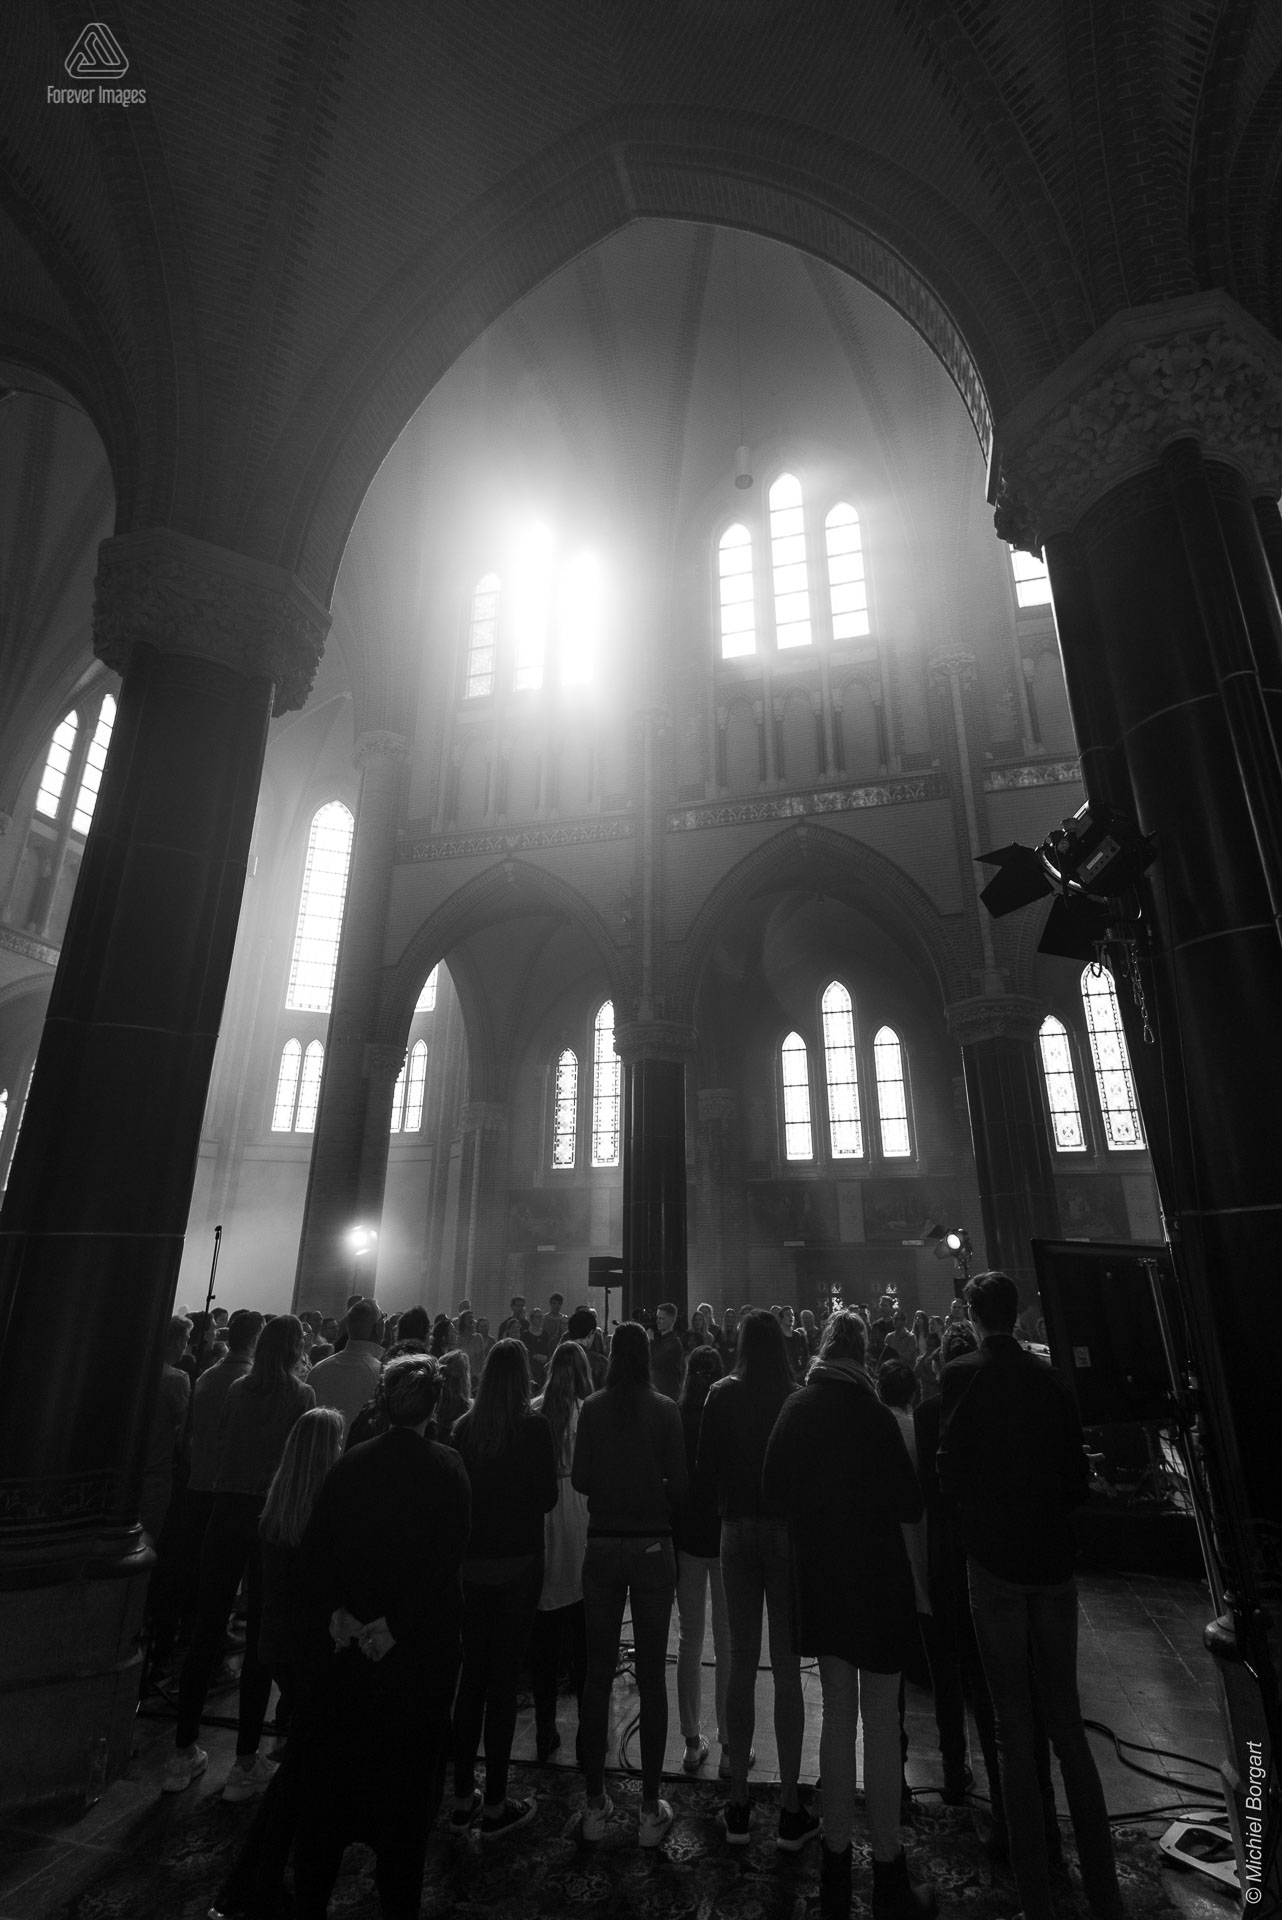 Black and white photo neo-gothic concert worship low key | InSalvation Gouwekerk Gouda | Photographer Michiel Borgart Forever Images.